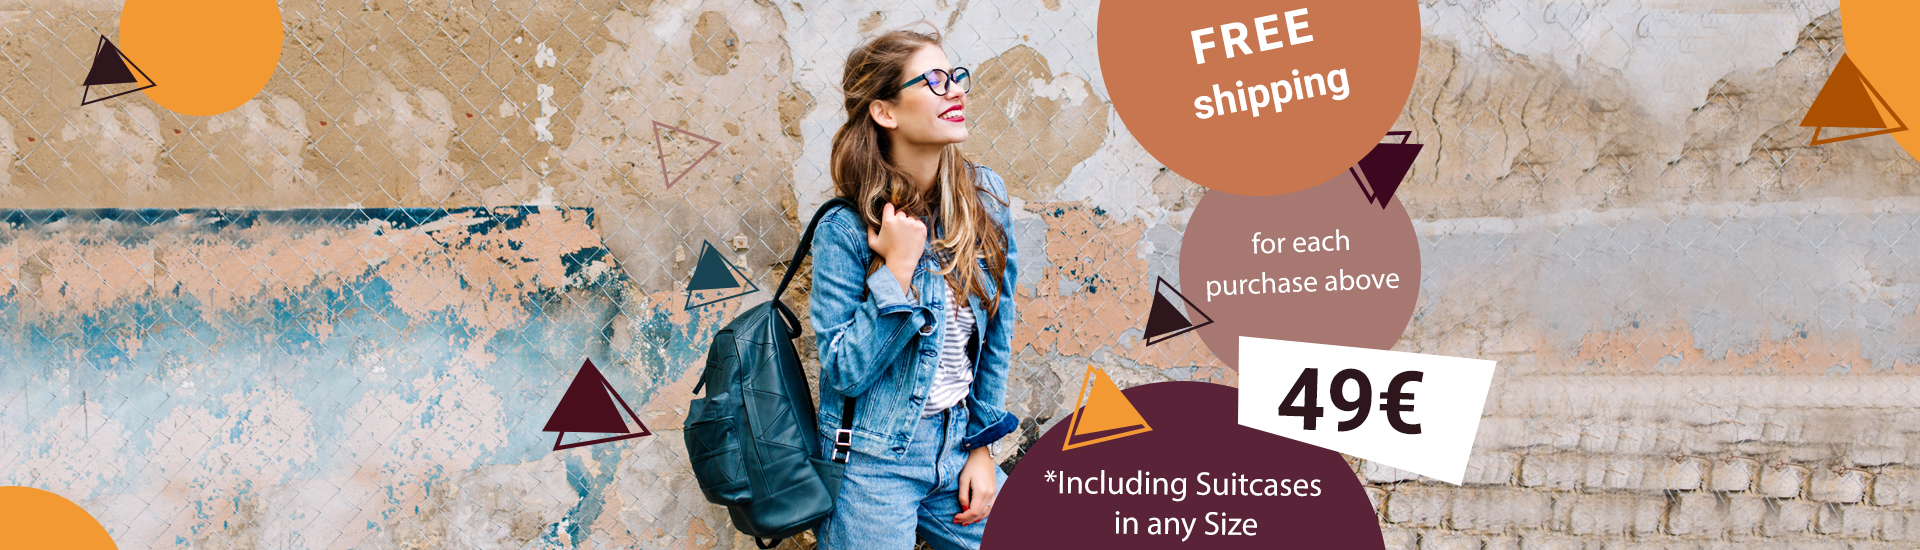 free shipping for purchases over 49 euros